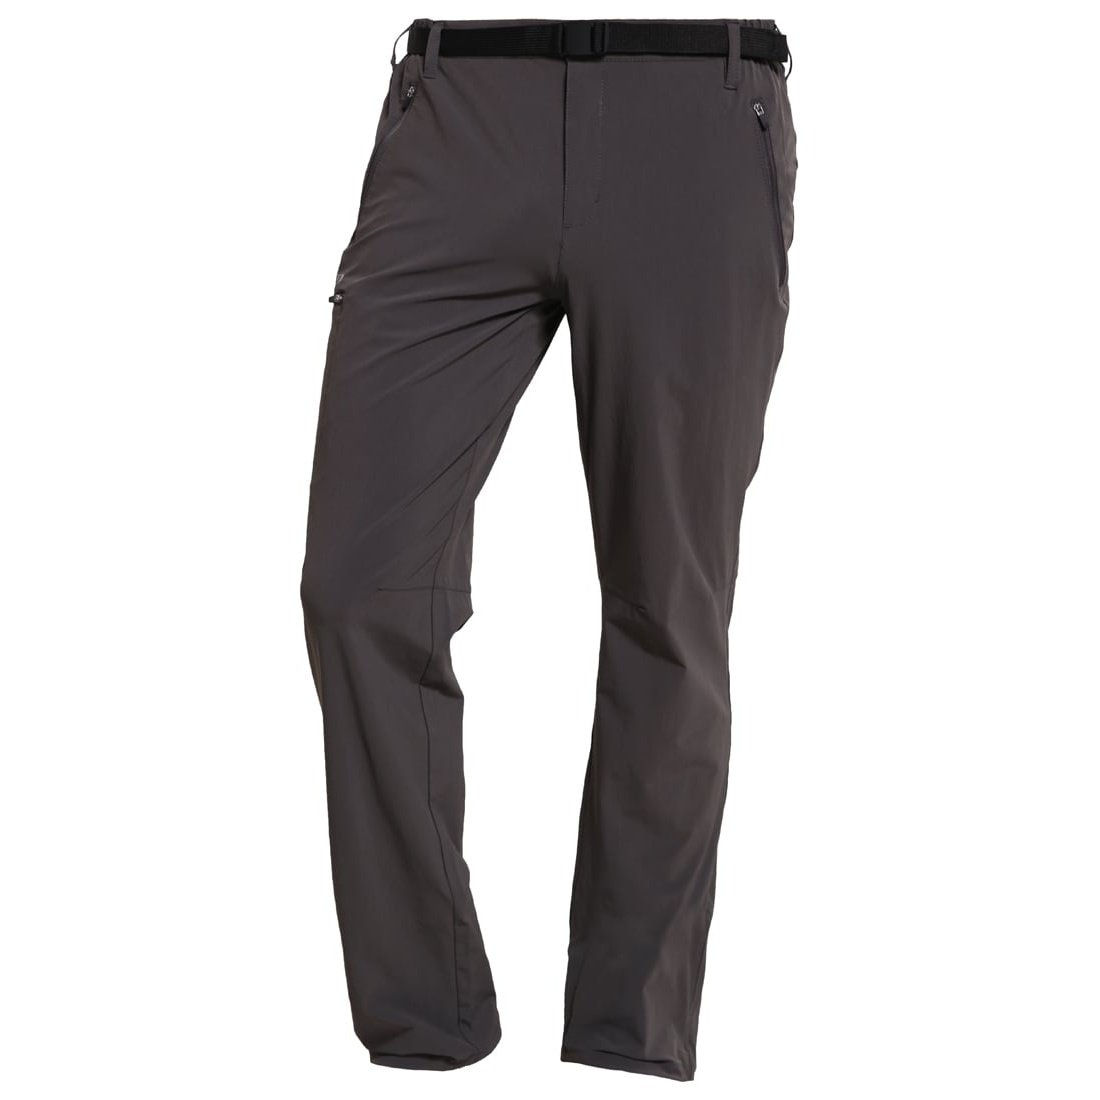 Regatta Xert II Stretch Trousers Men Short Seal Grau Größe 50-Short 2018 Hose lang